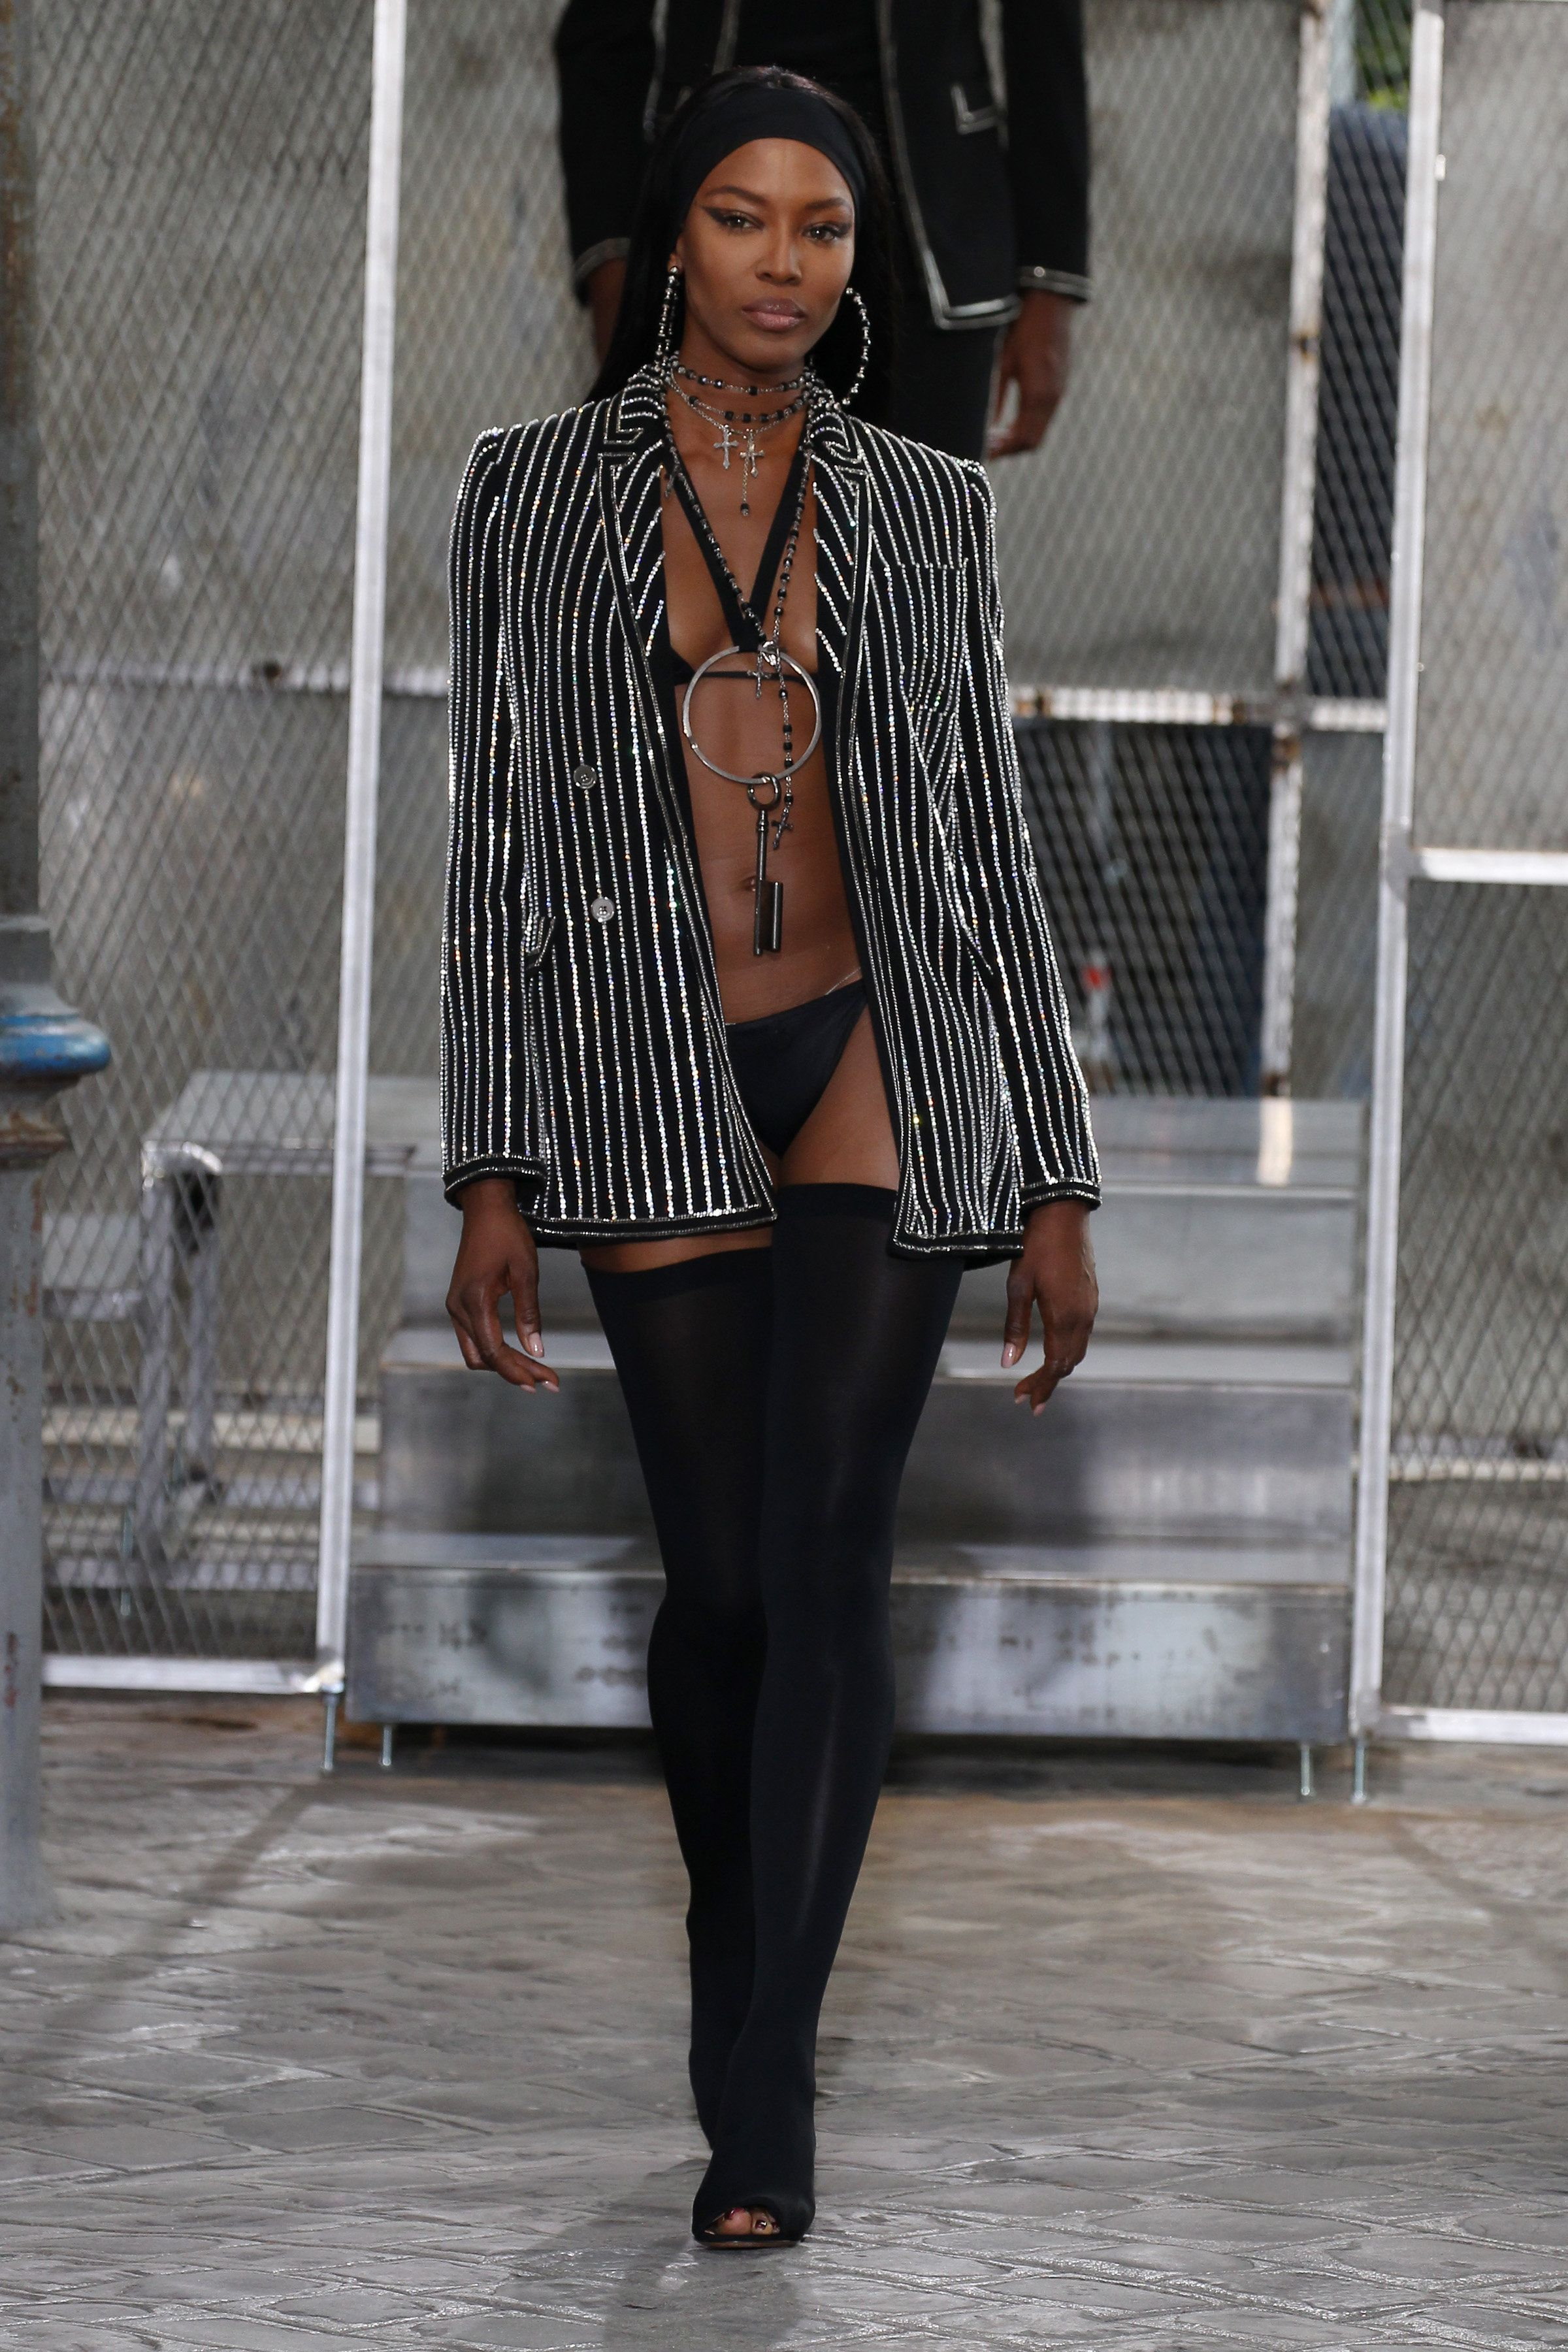 Atthe Givenchy spring/summer show as part of Paris Fashion Week.